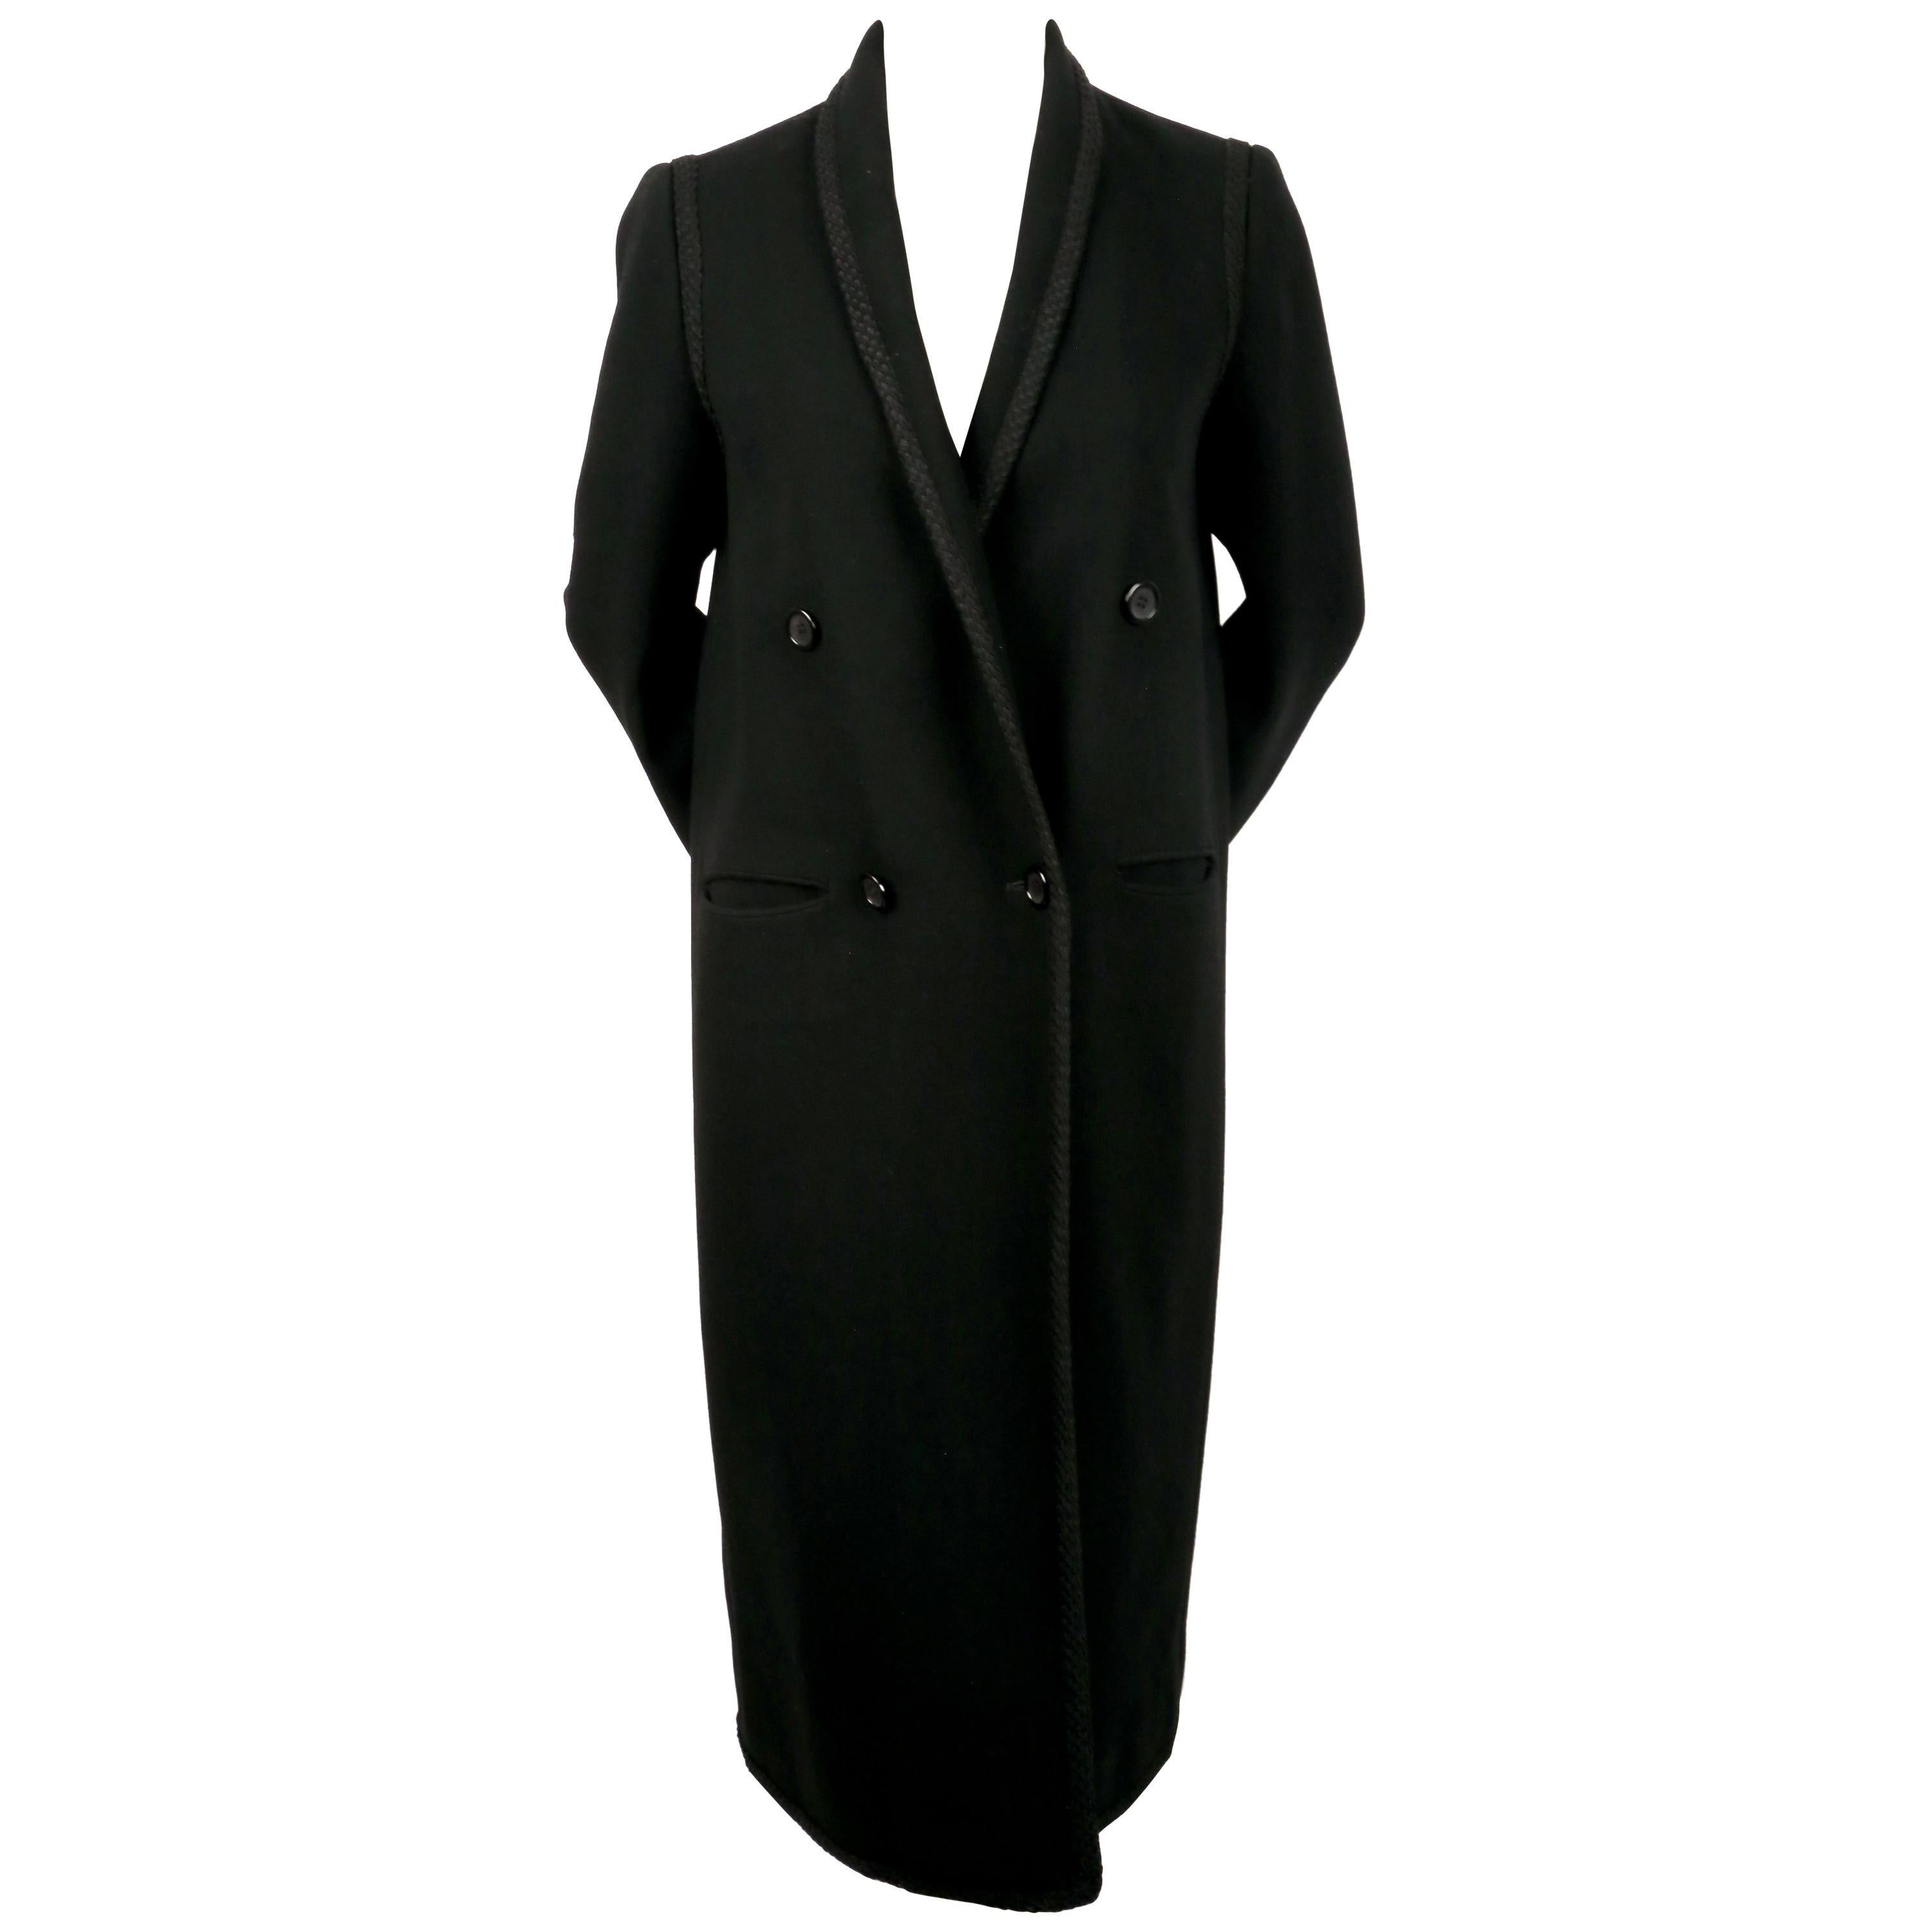 1980's BILL BLASS double breasted wool coat with cord trim